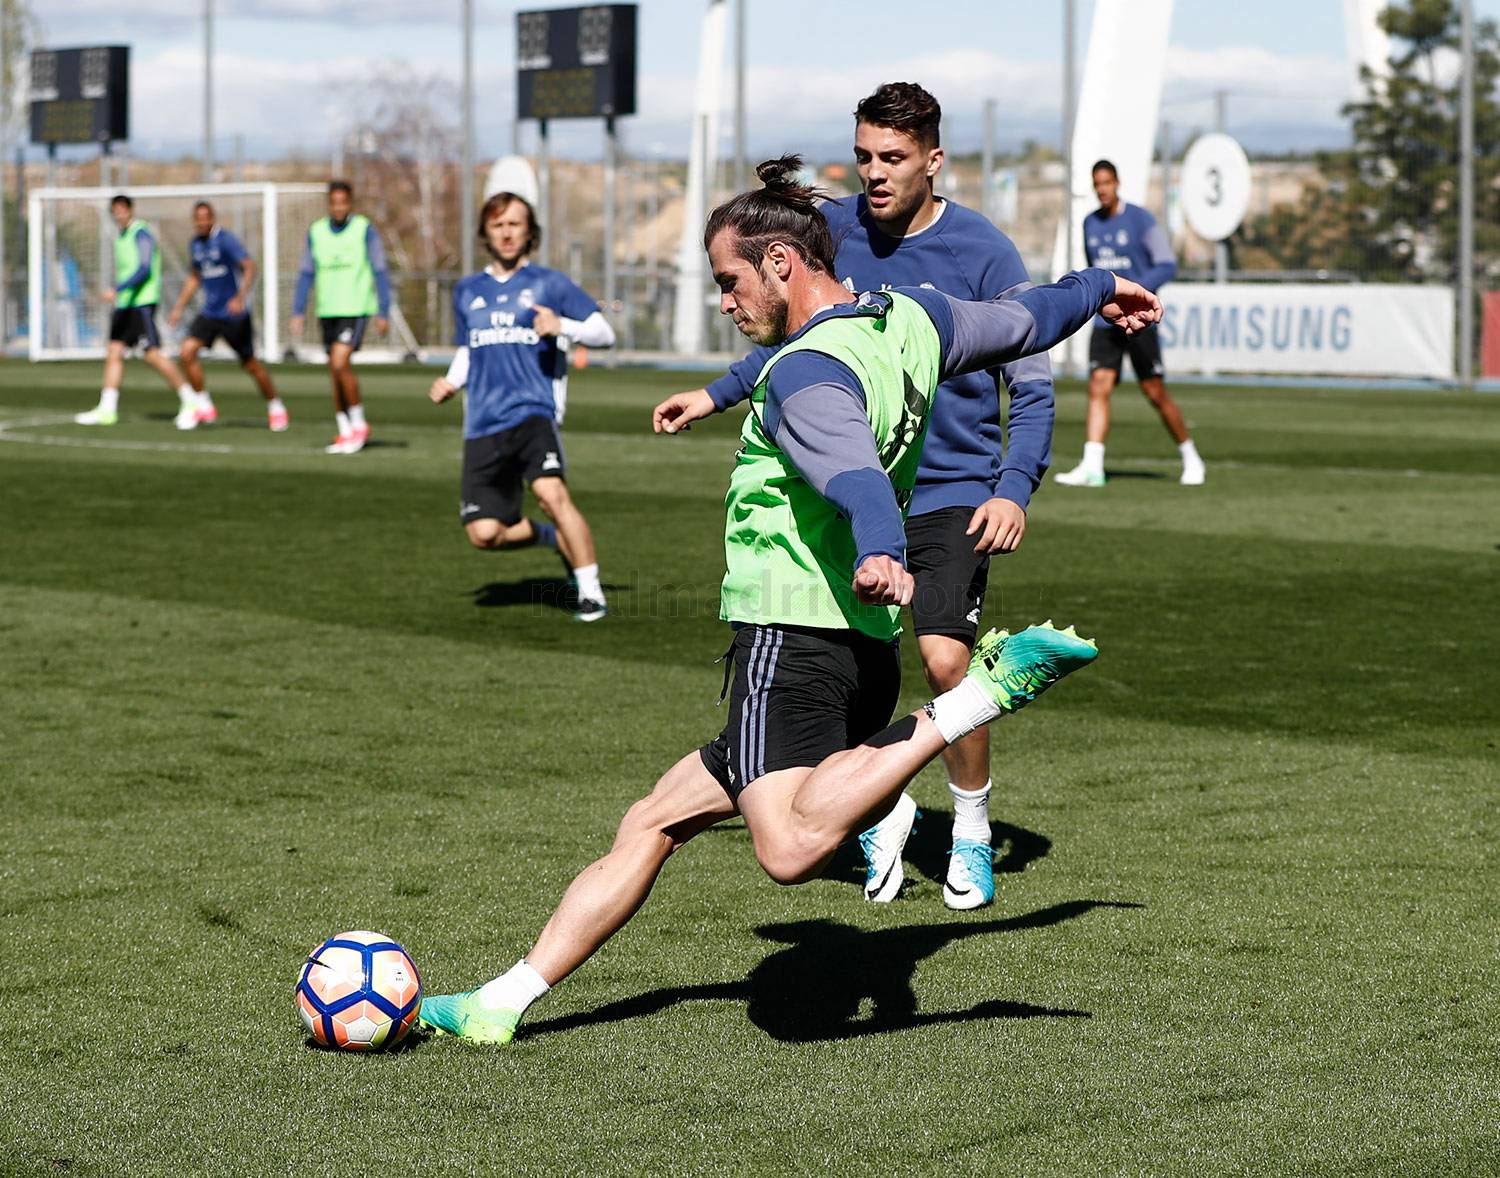 Real Madrid - Entrenamiento del Real Madrid - 01-04-2017